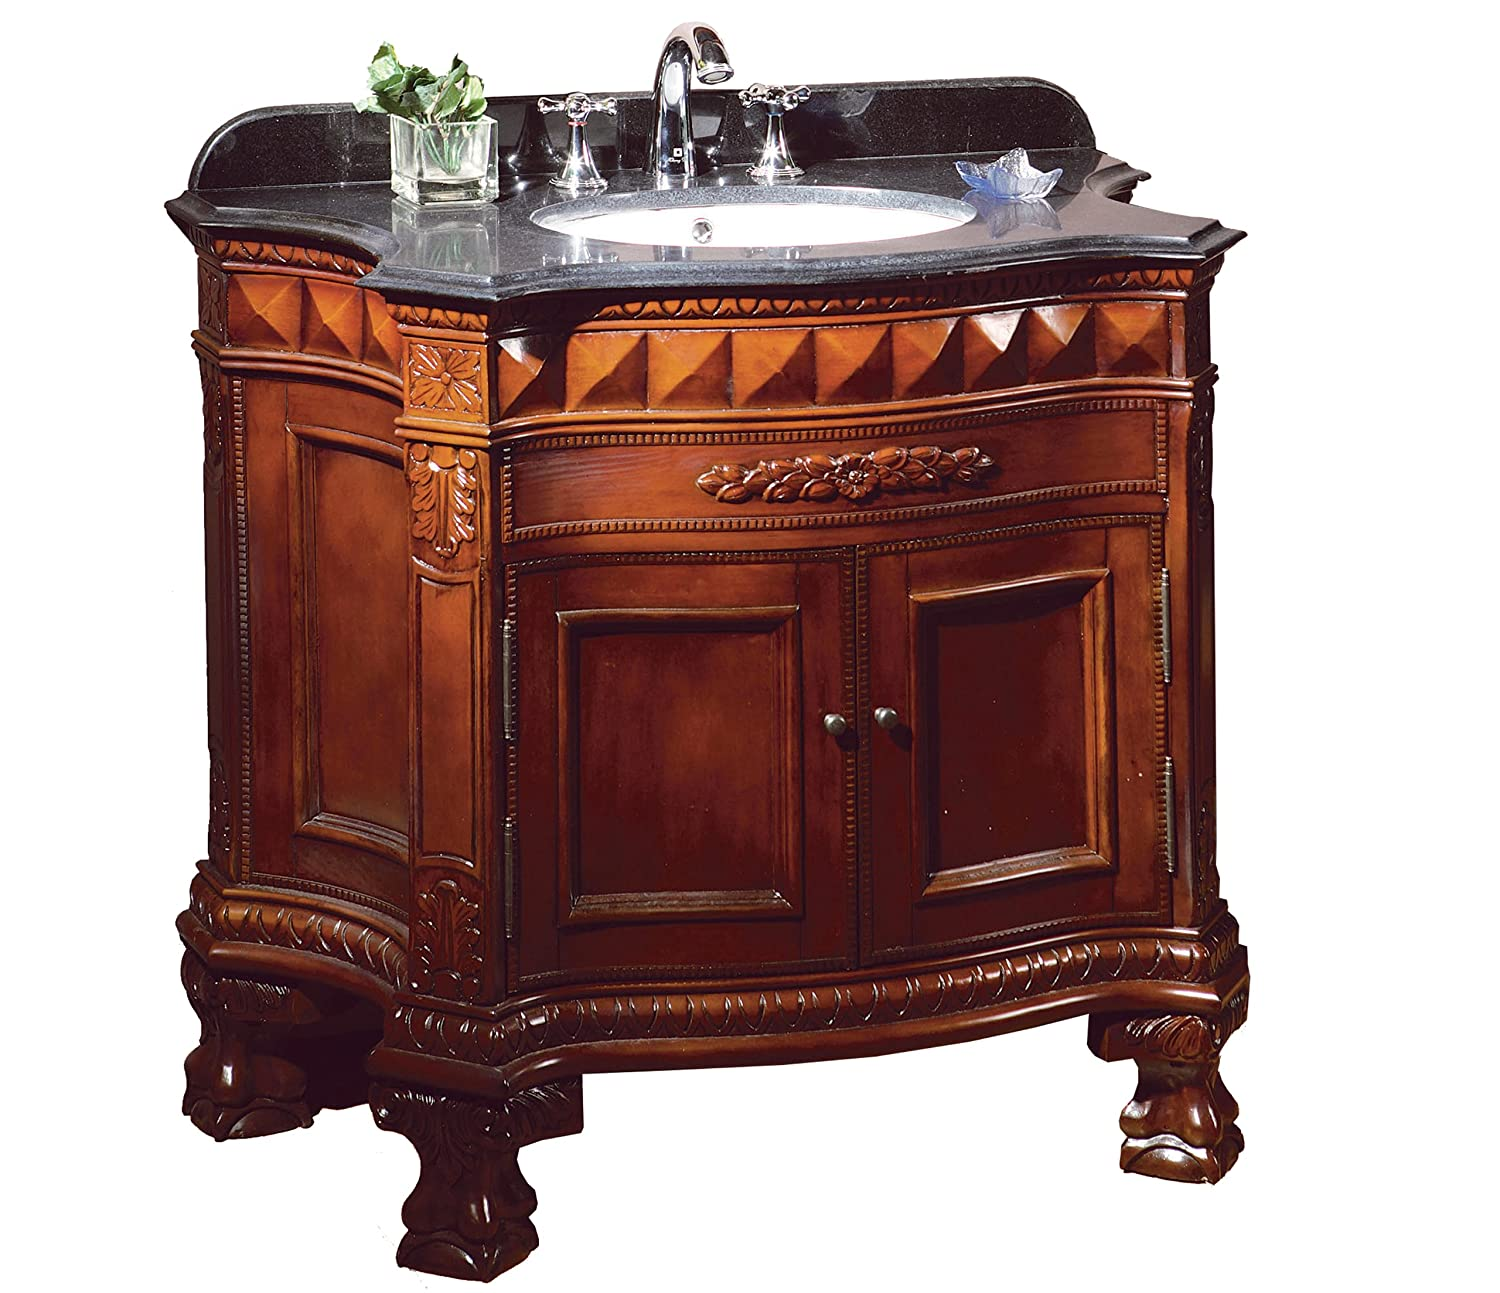 Ove Decors Buckingham 36 Bathroom 36 Inch Vanity Ensemble With Black Granite  Countertop And Ceramic Basin, Dark Cherry   Bathroom Vanity Cabinet And  Sink ...